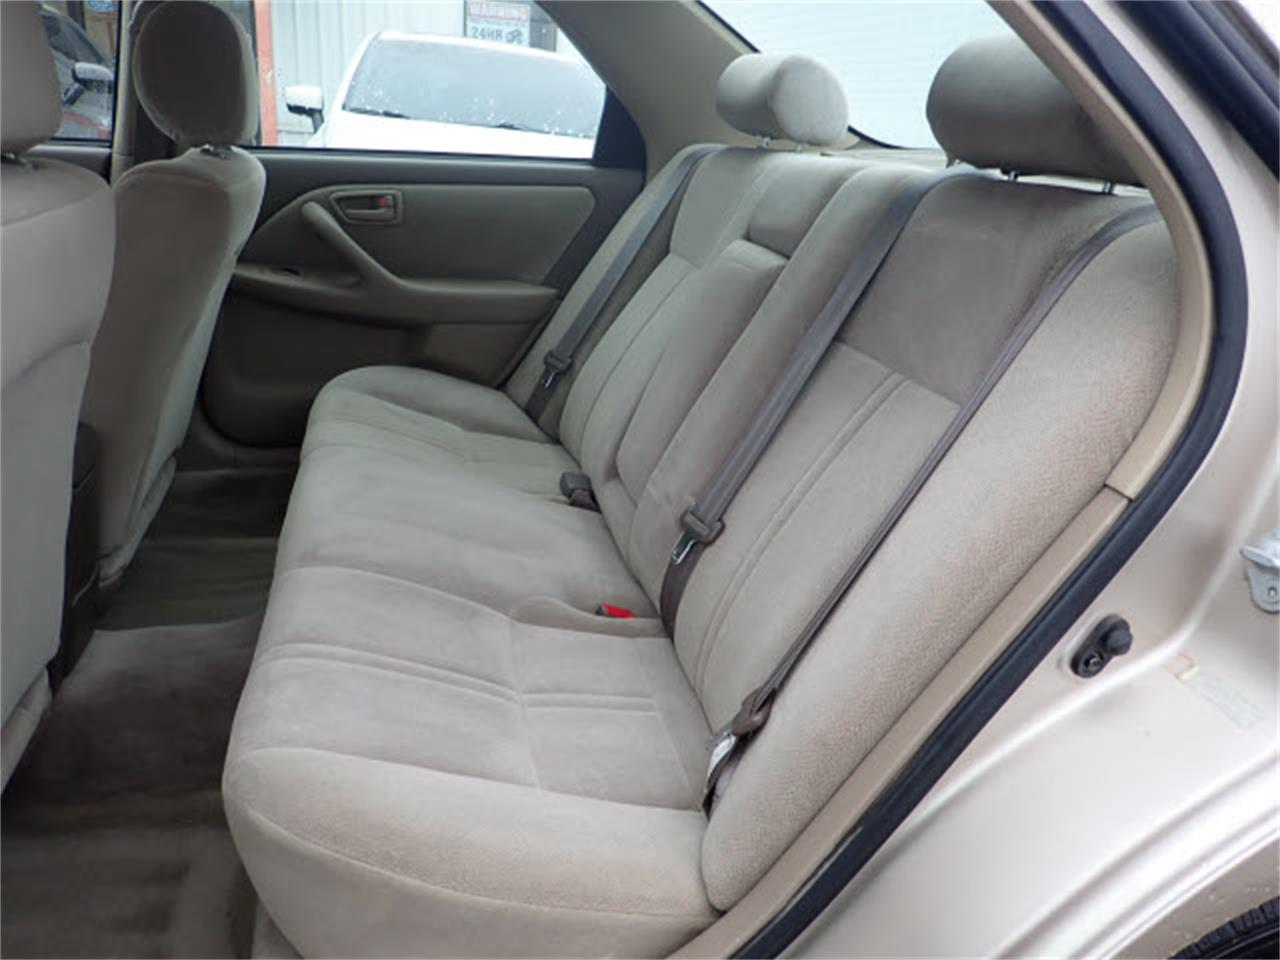 1999 Toyota Camry for sale in Tacoma, WA – photo 10